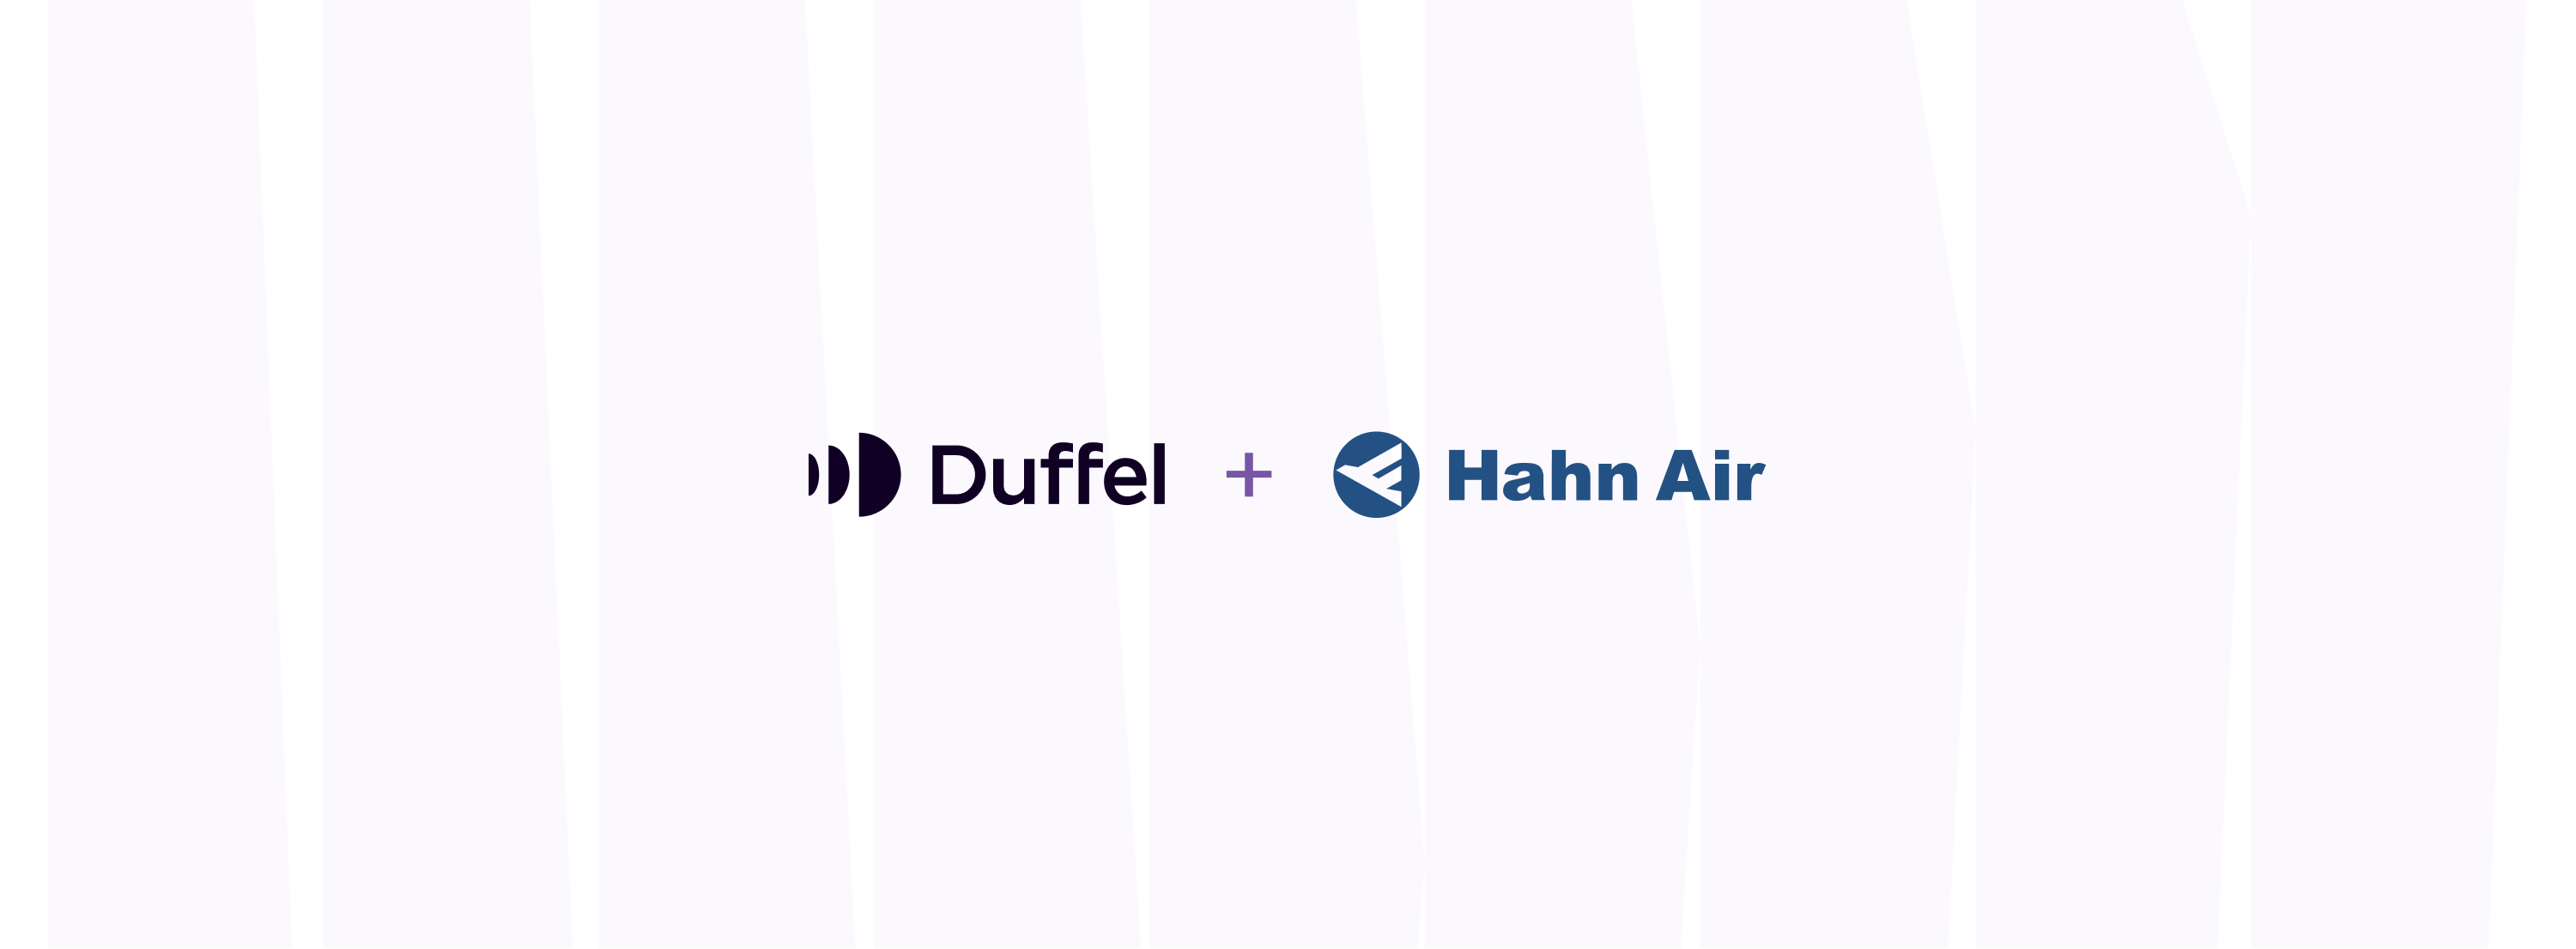 Access routes from more than 380 airlines on Duffel